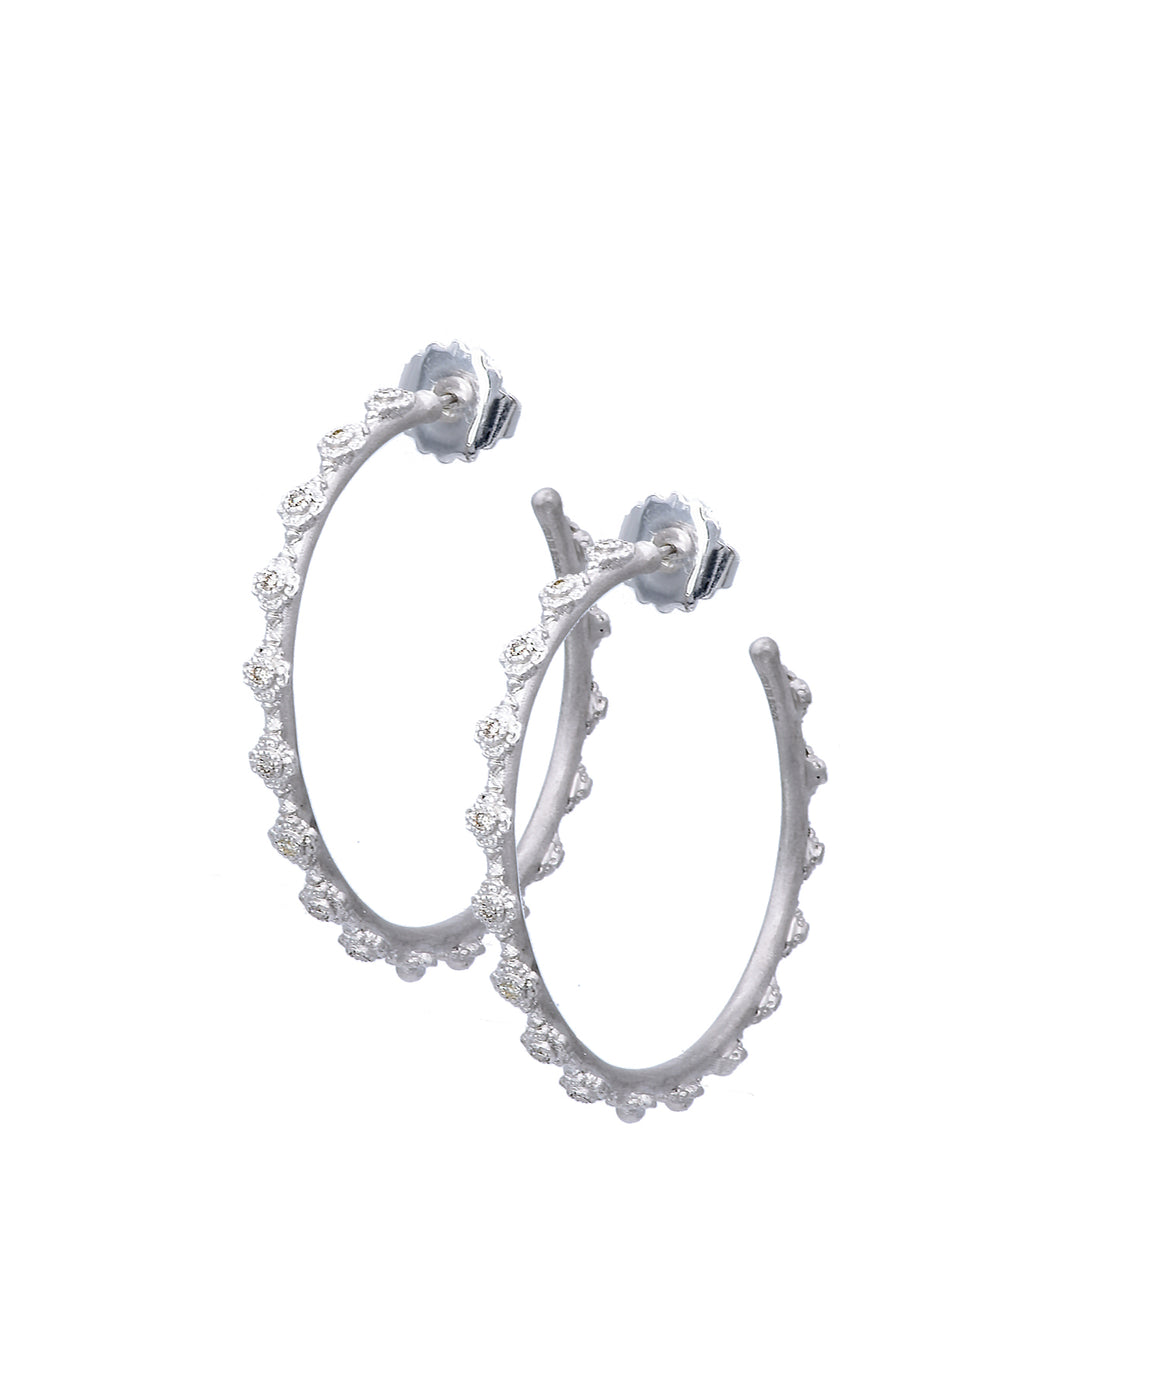 Cravelli crosses line these textured sterling silver hoop earrings. The earrings are set in front with champagne diamonds. The hoops are 35 mm in diameter.